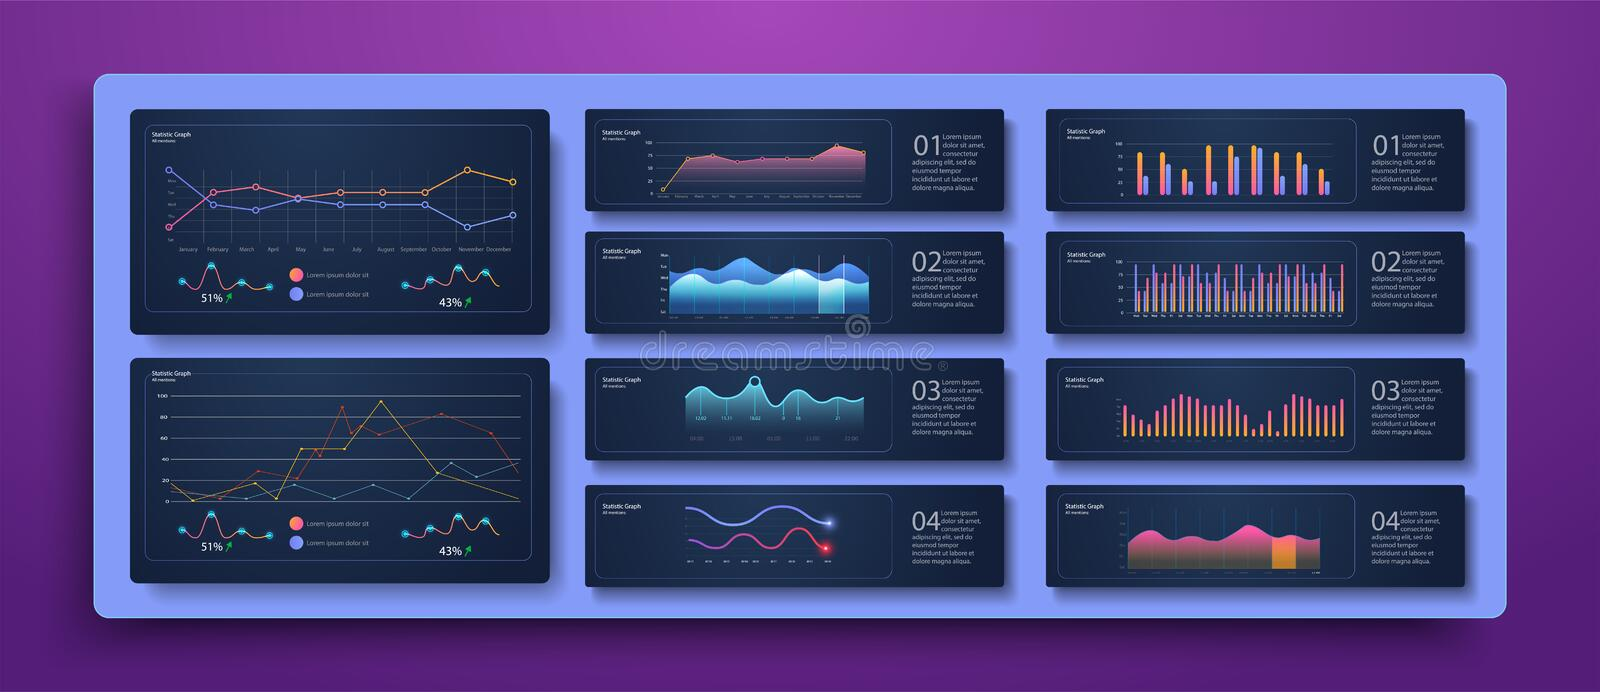 Dashboard infographic template with modern design royalty free illustration